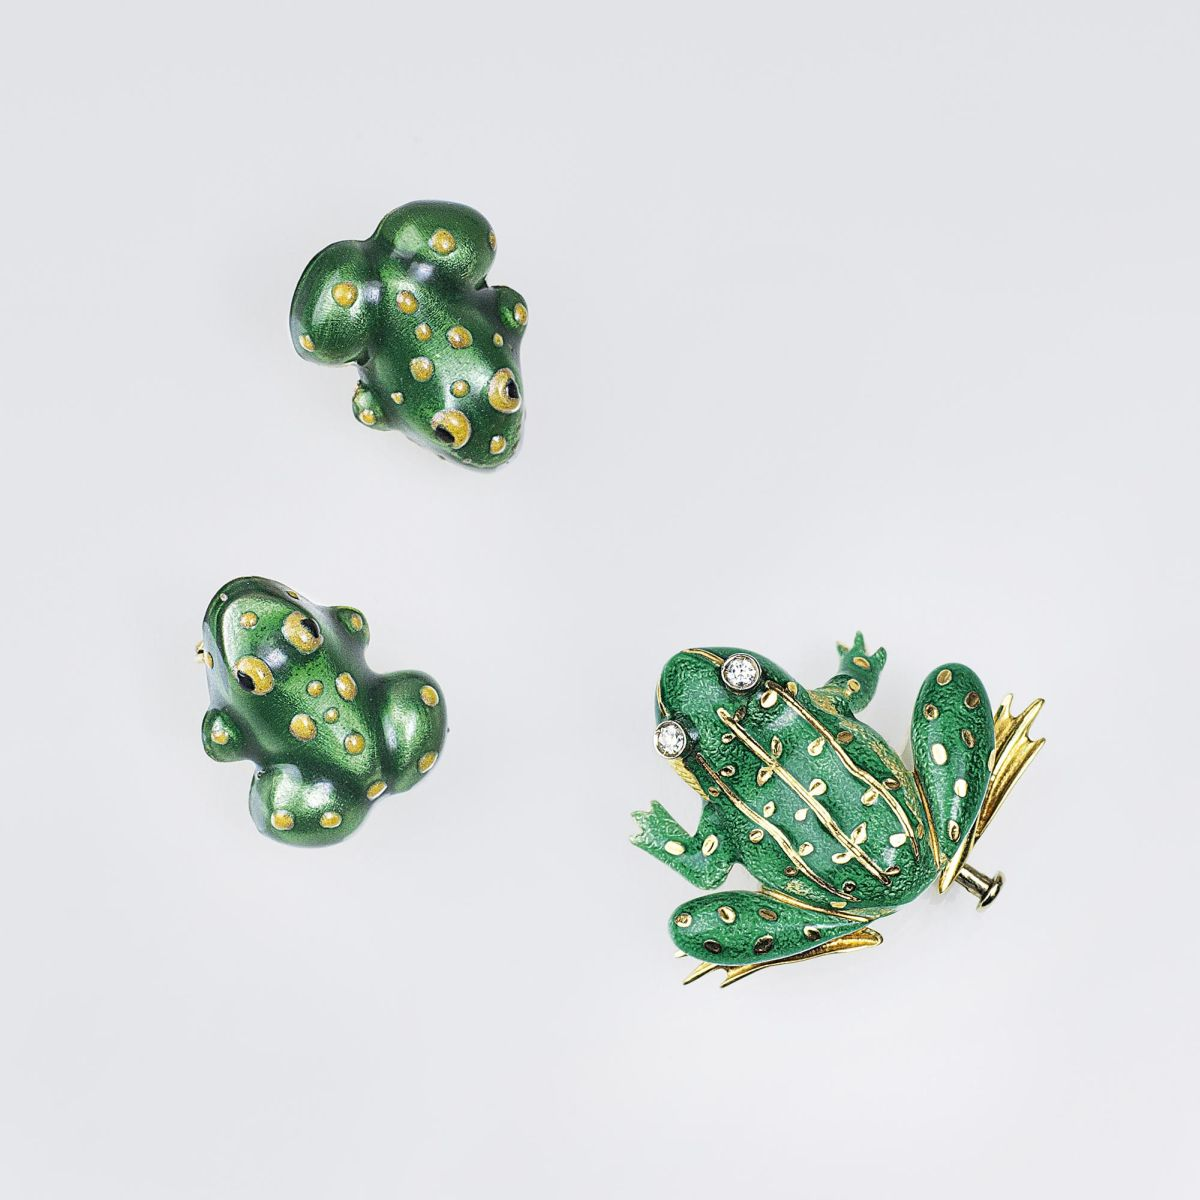 A Vintage Jewelry Set with Enamel Ornaments 'Frogs'